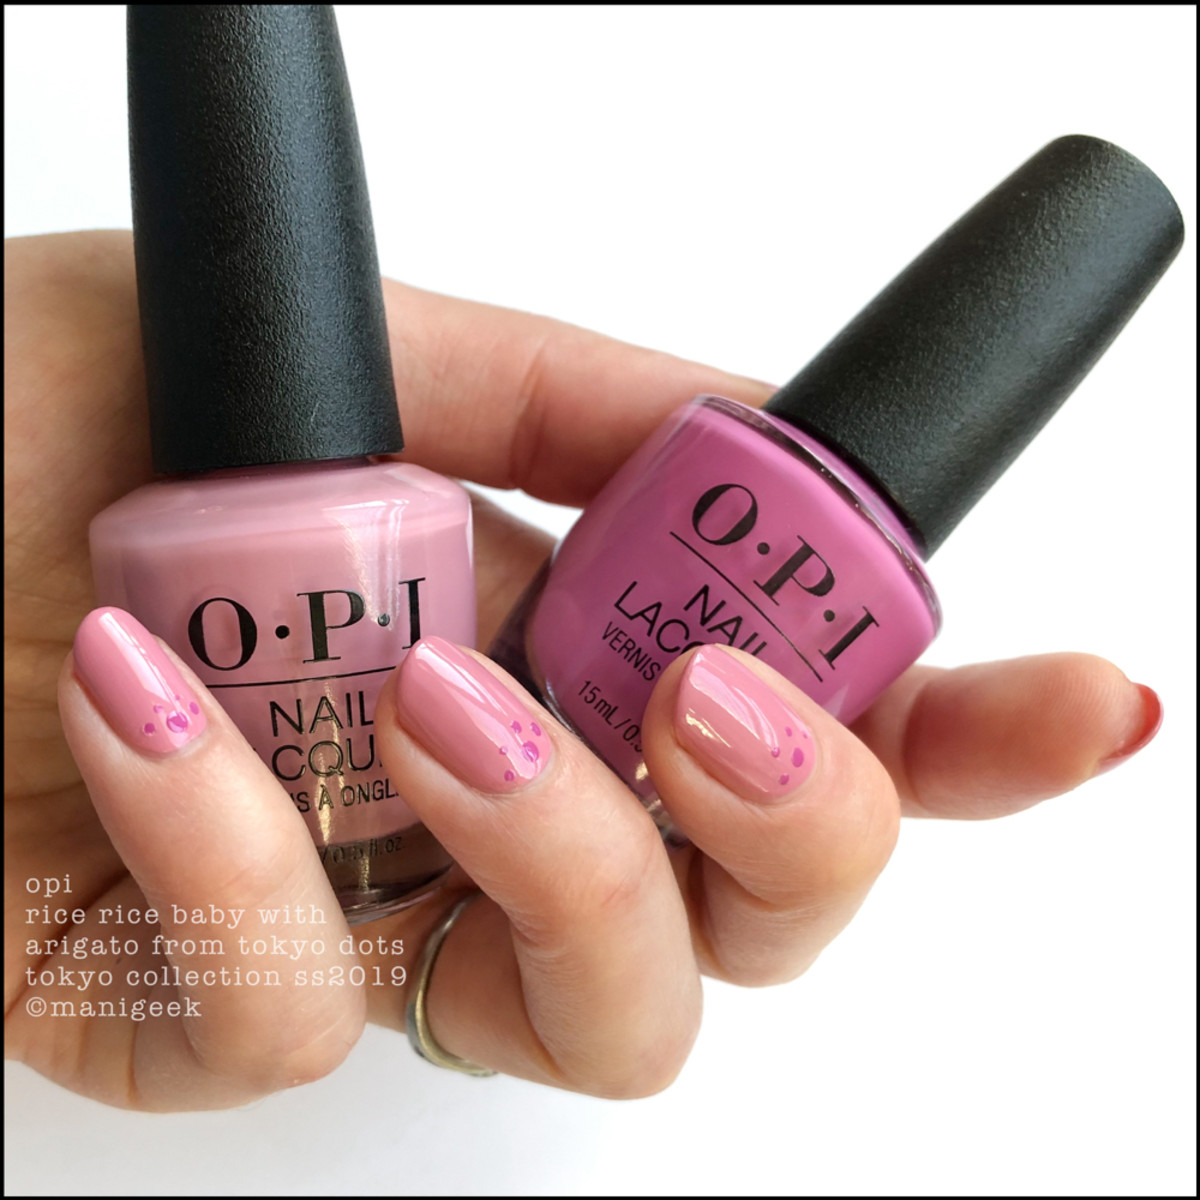 OPI Rice Rice Baby with Arigato From Tokyo - OPI Tokyo 2019